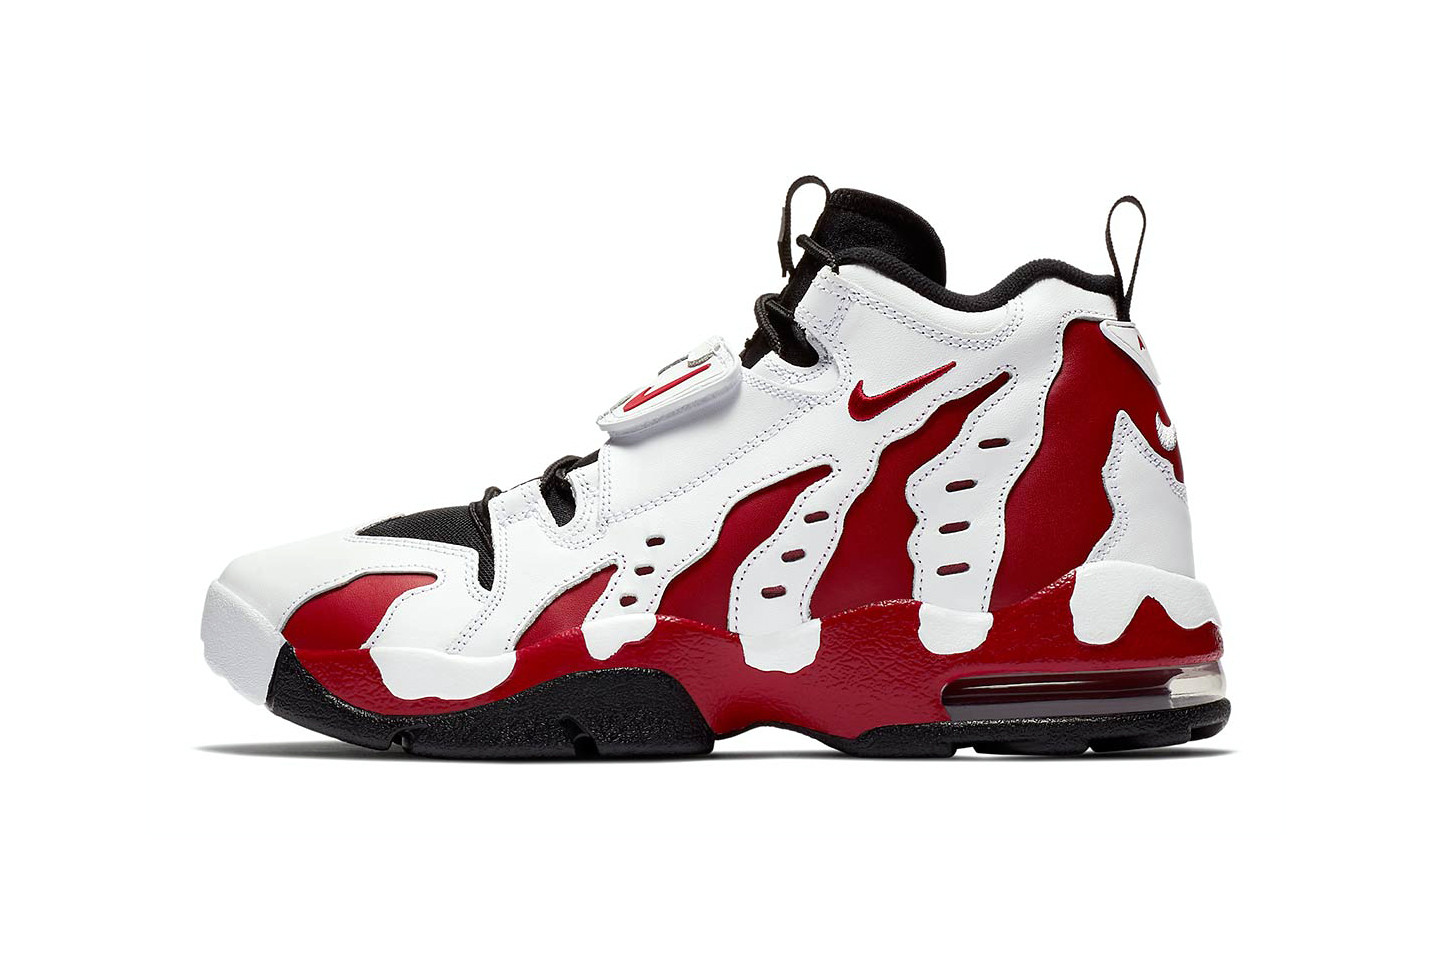 Nike Air DT Max '96 in White, Red